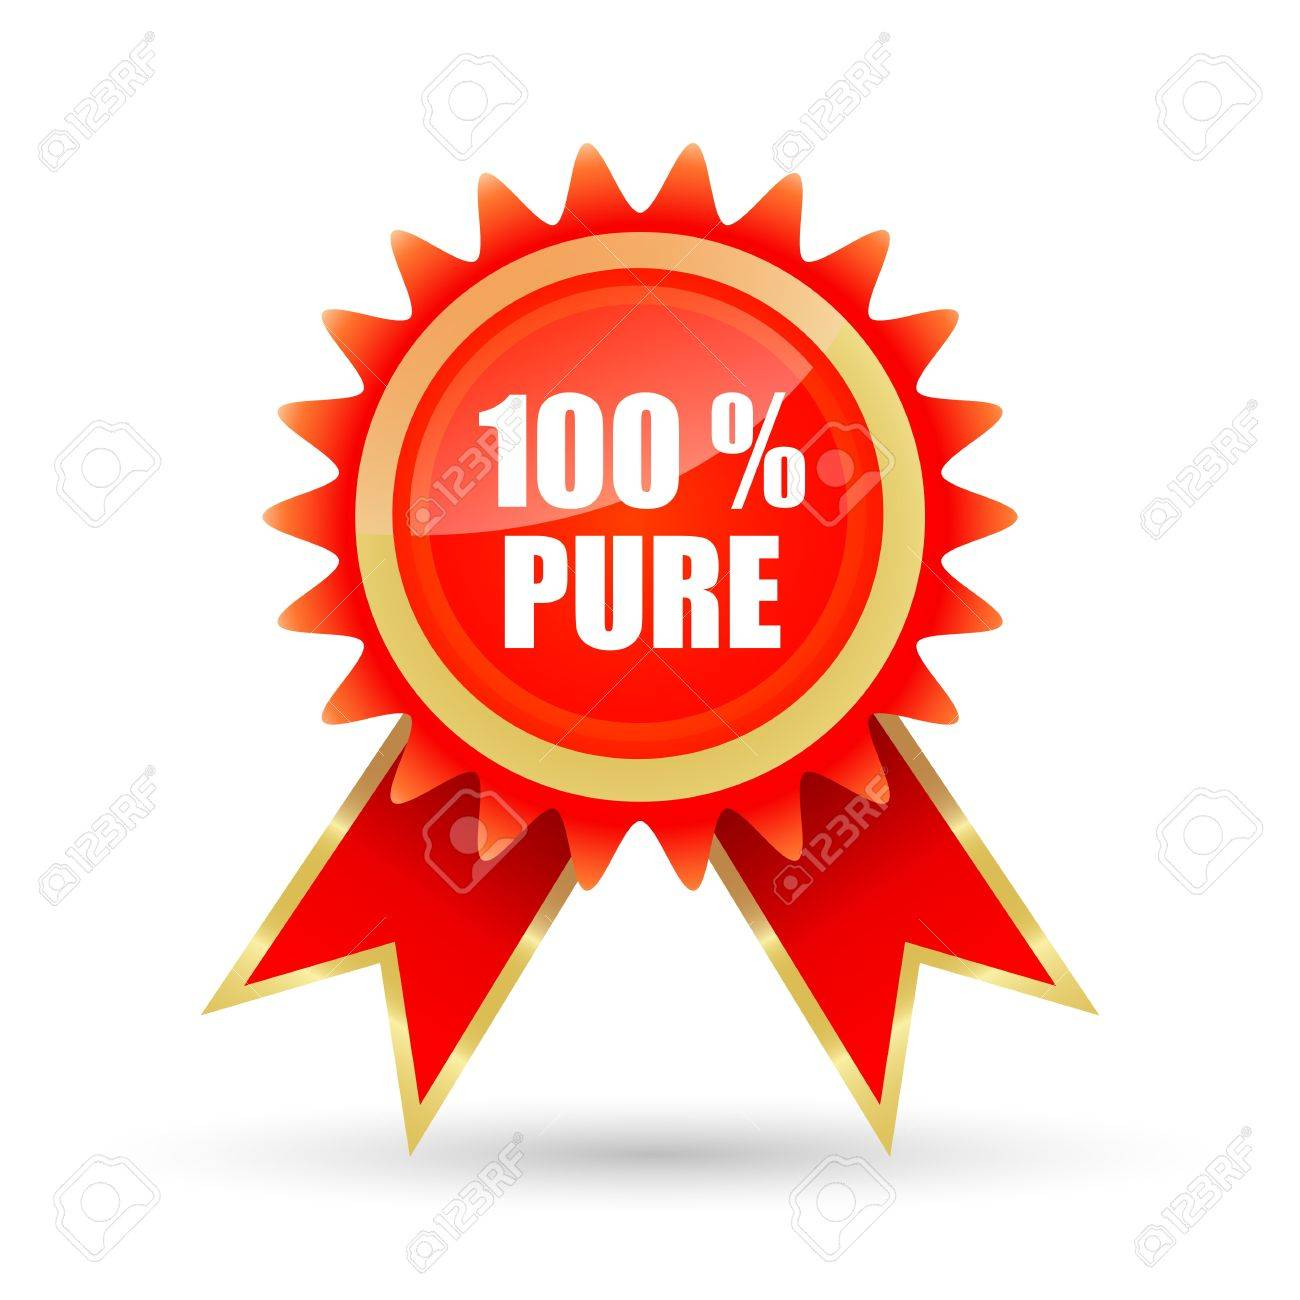 illustration of 100% pure tag on white background Stock Vector - 9438532